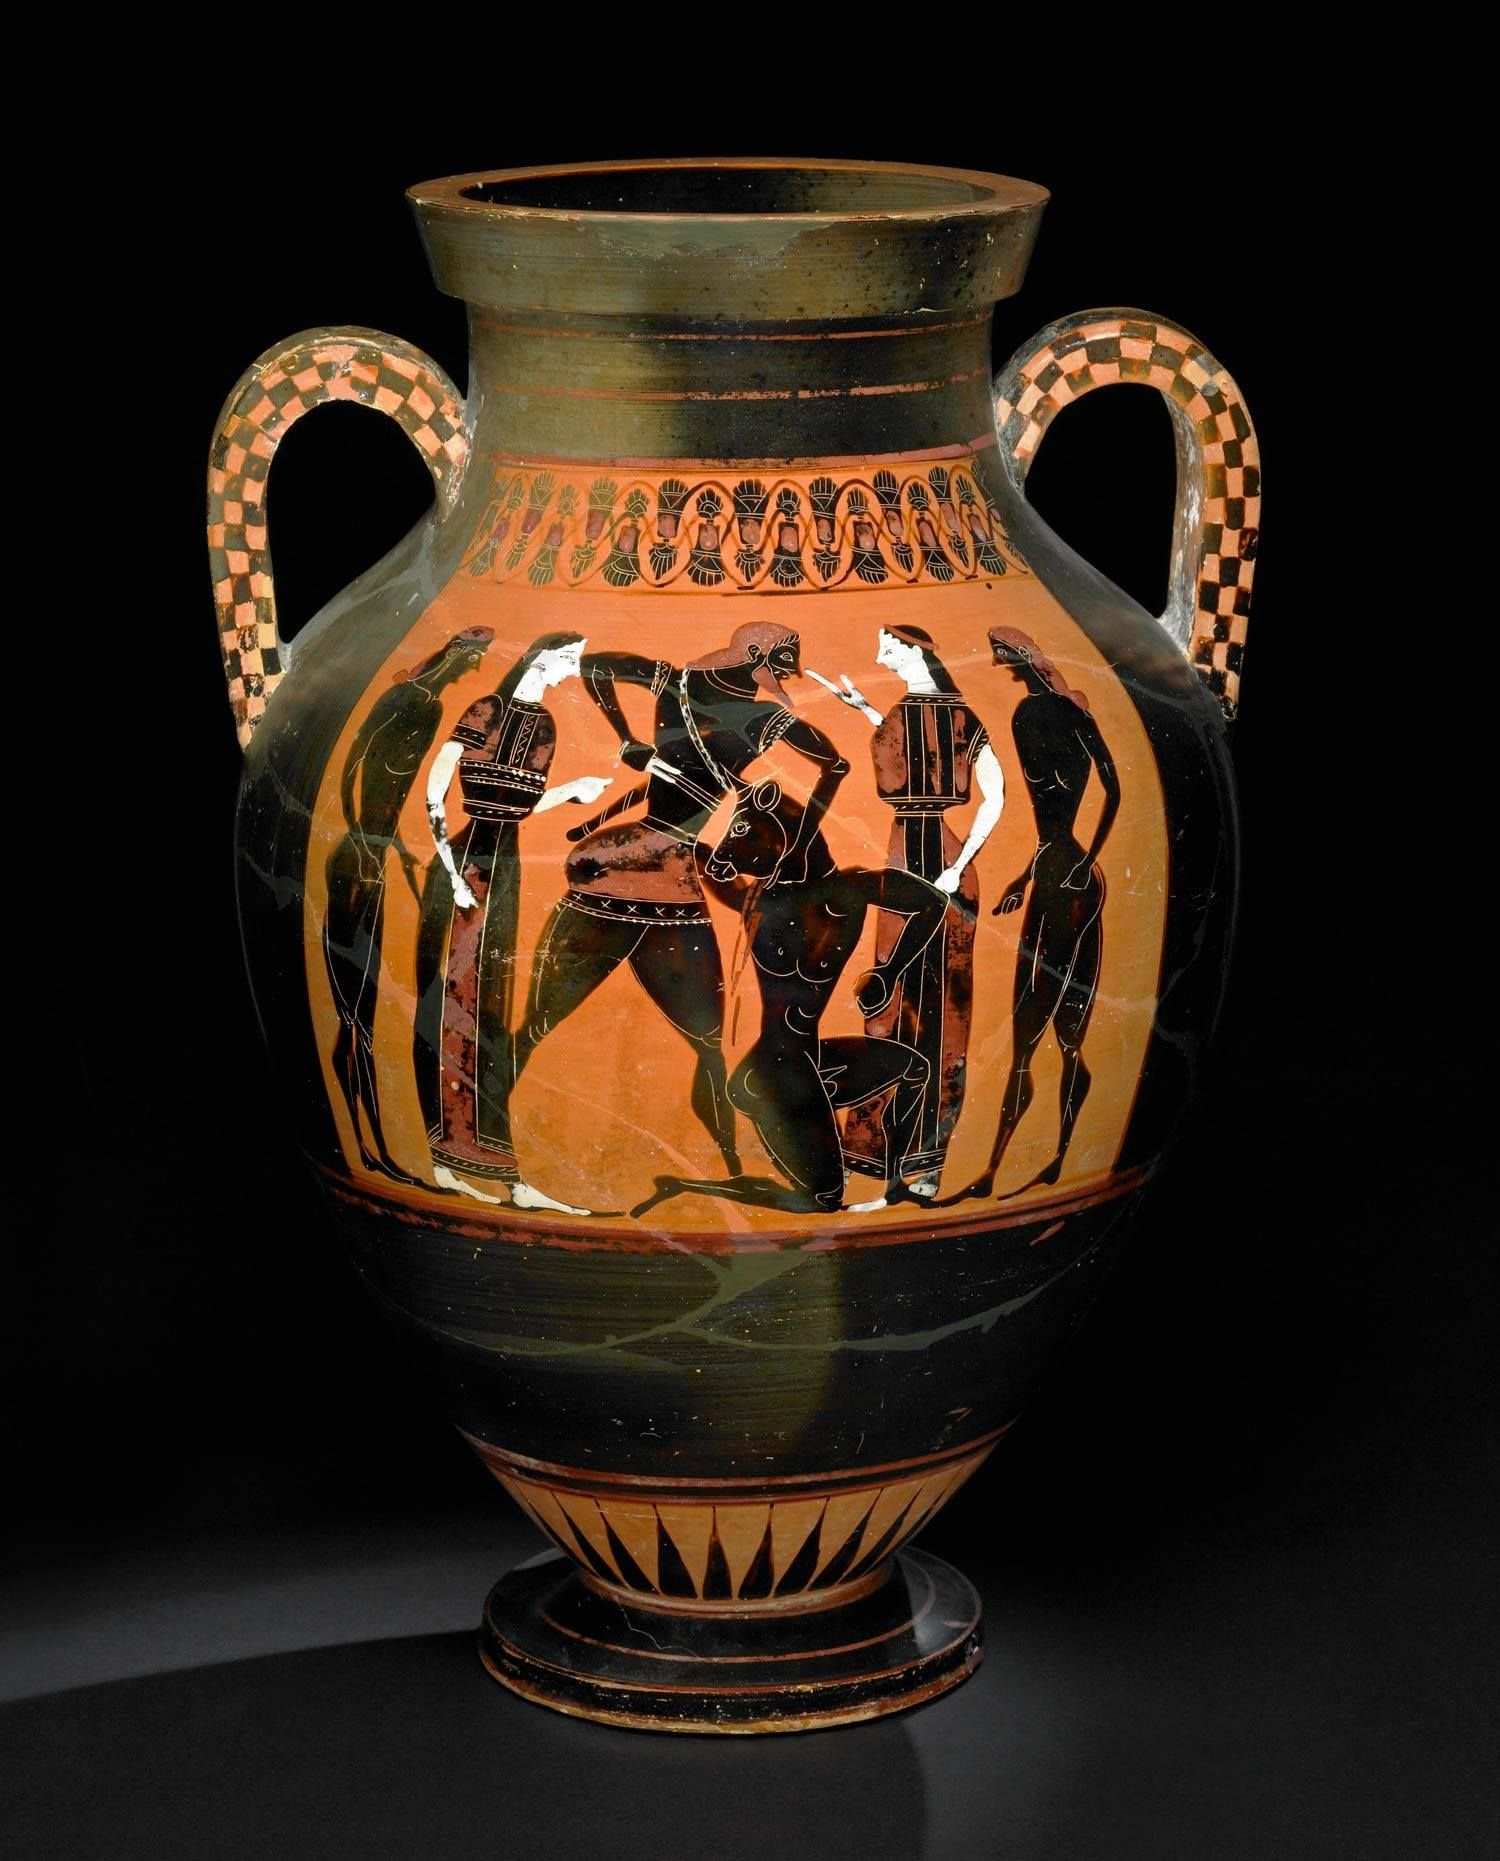 Amphora depicting the contest of Theseus and the Minotaur from around 550 BC